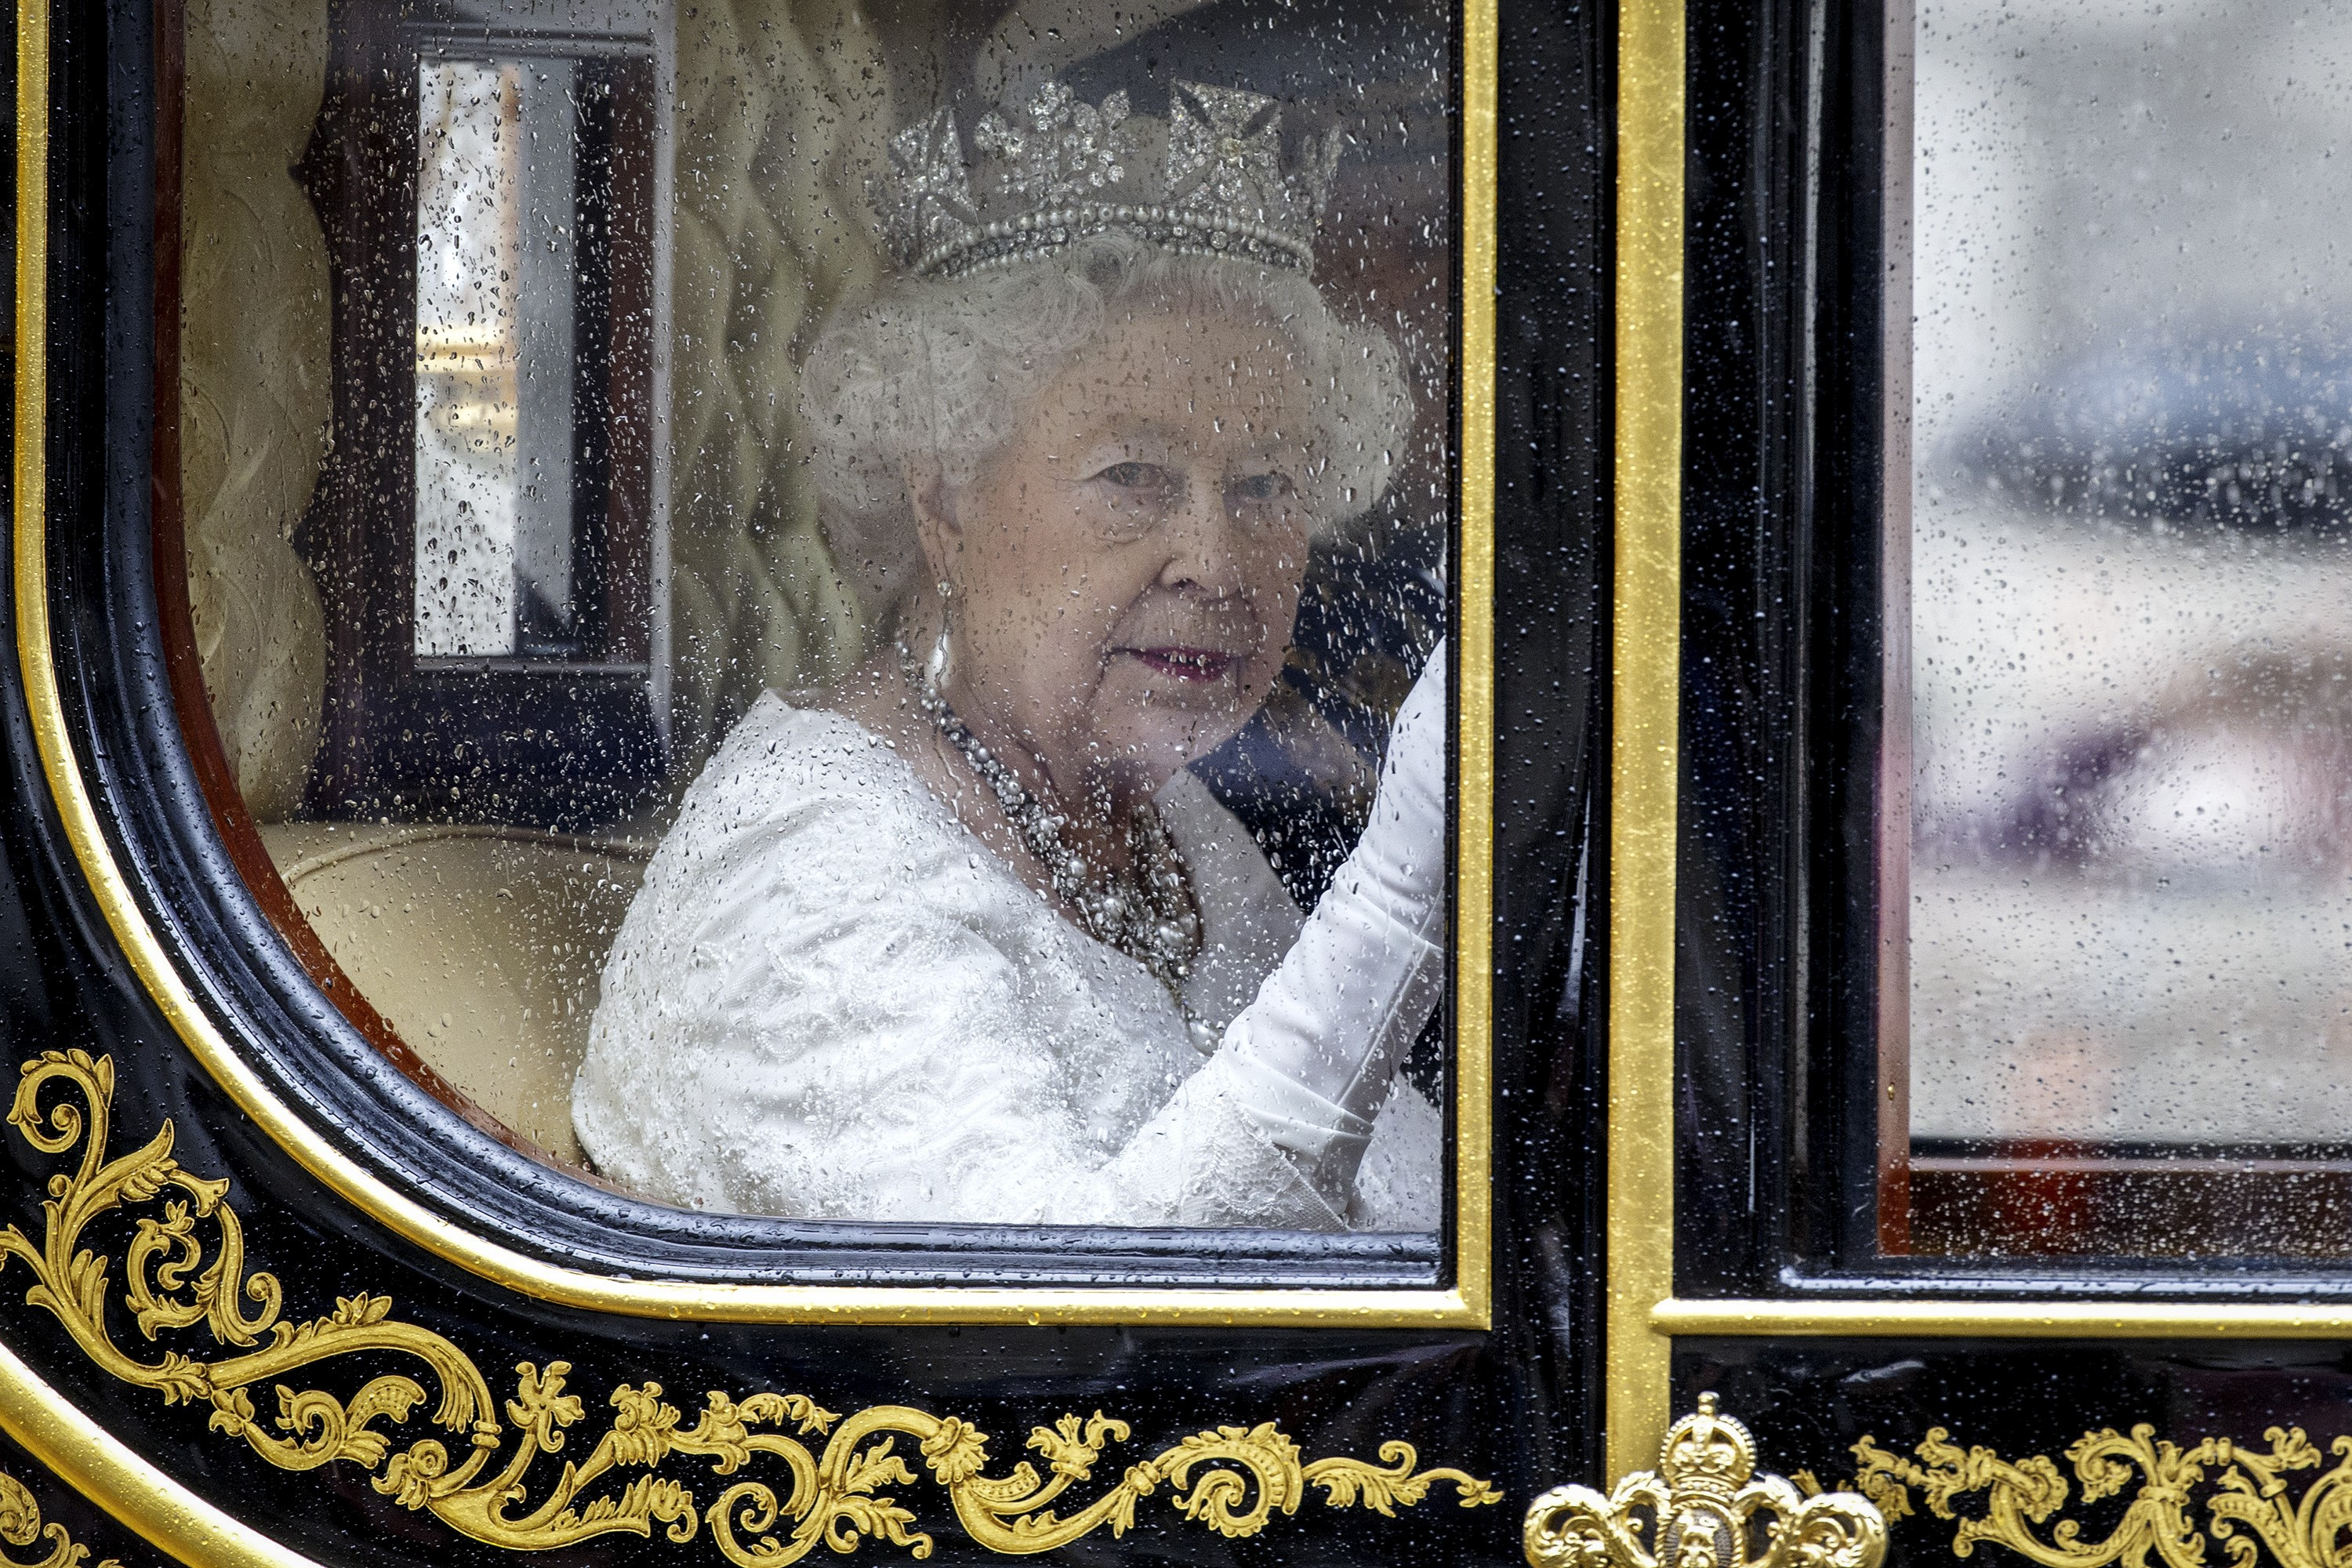 Britain's Queen Elizabeth II travels from the Houses of Parliament to Buckingham Palace after the Queen addressed the State Opening of Parliament in London, England on May 18, 2016.